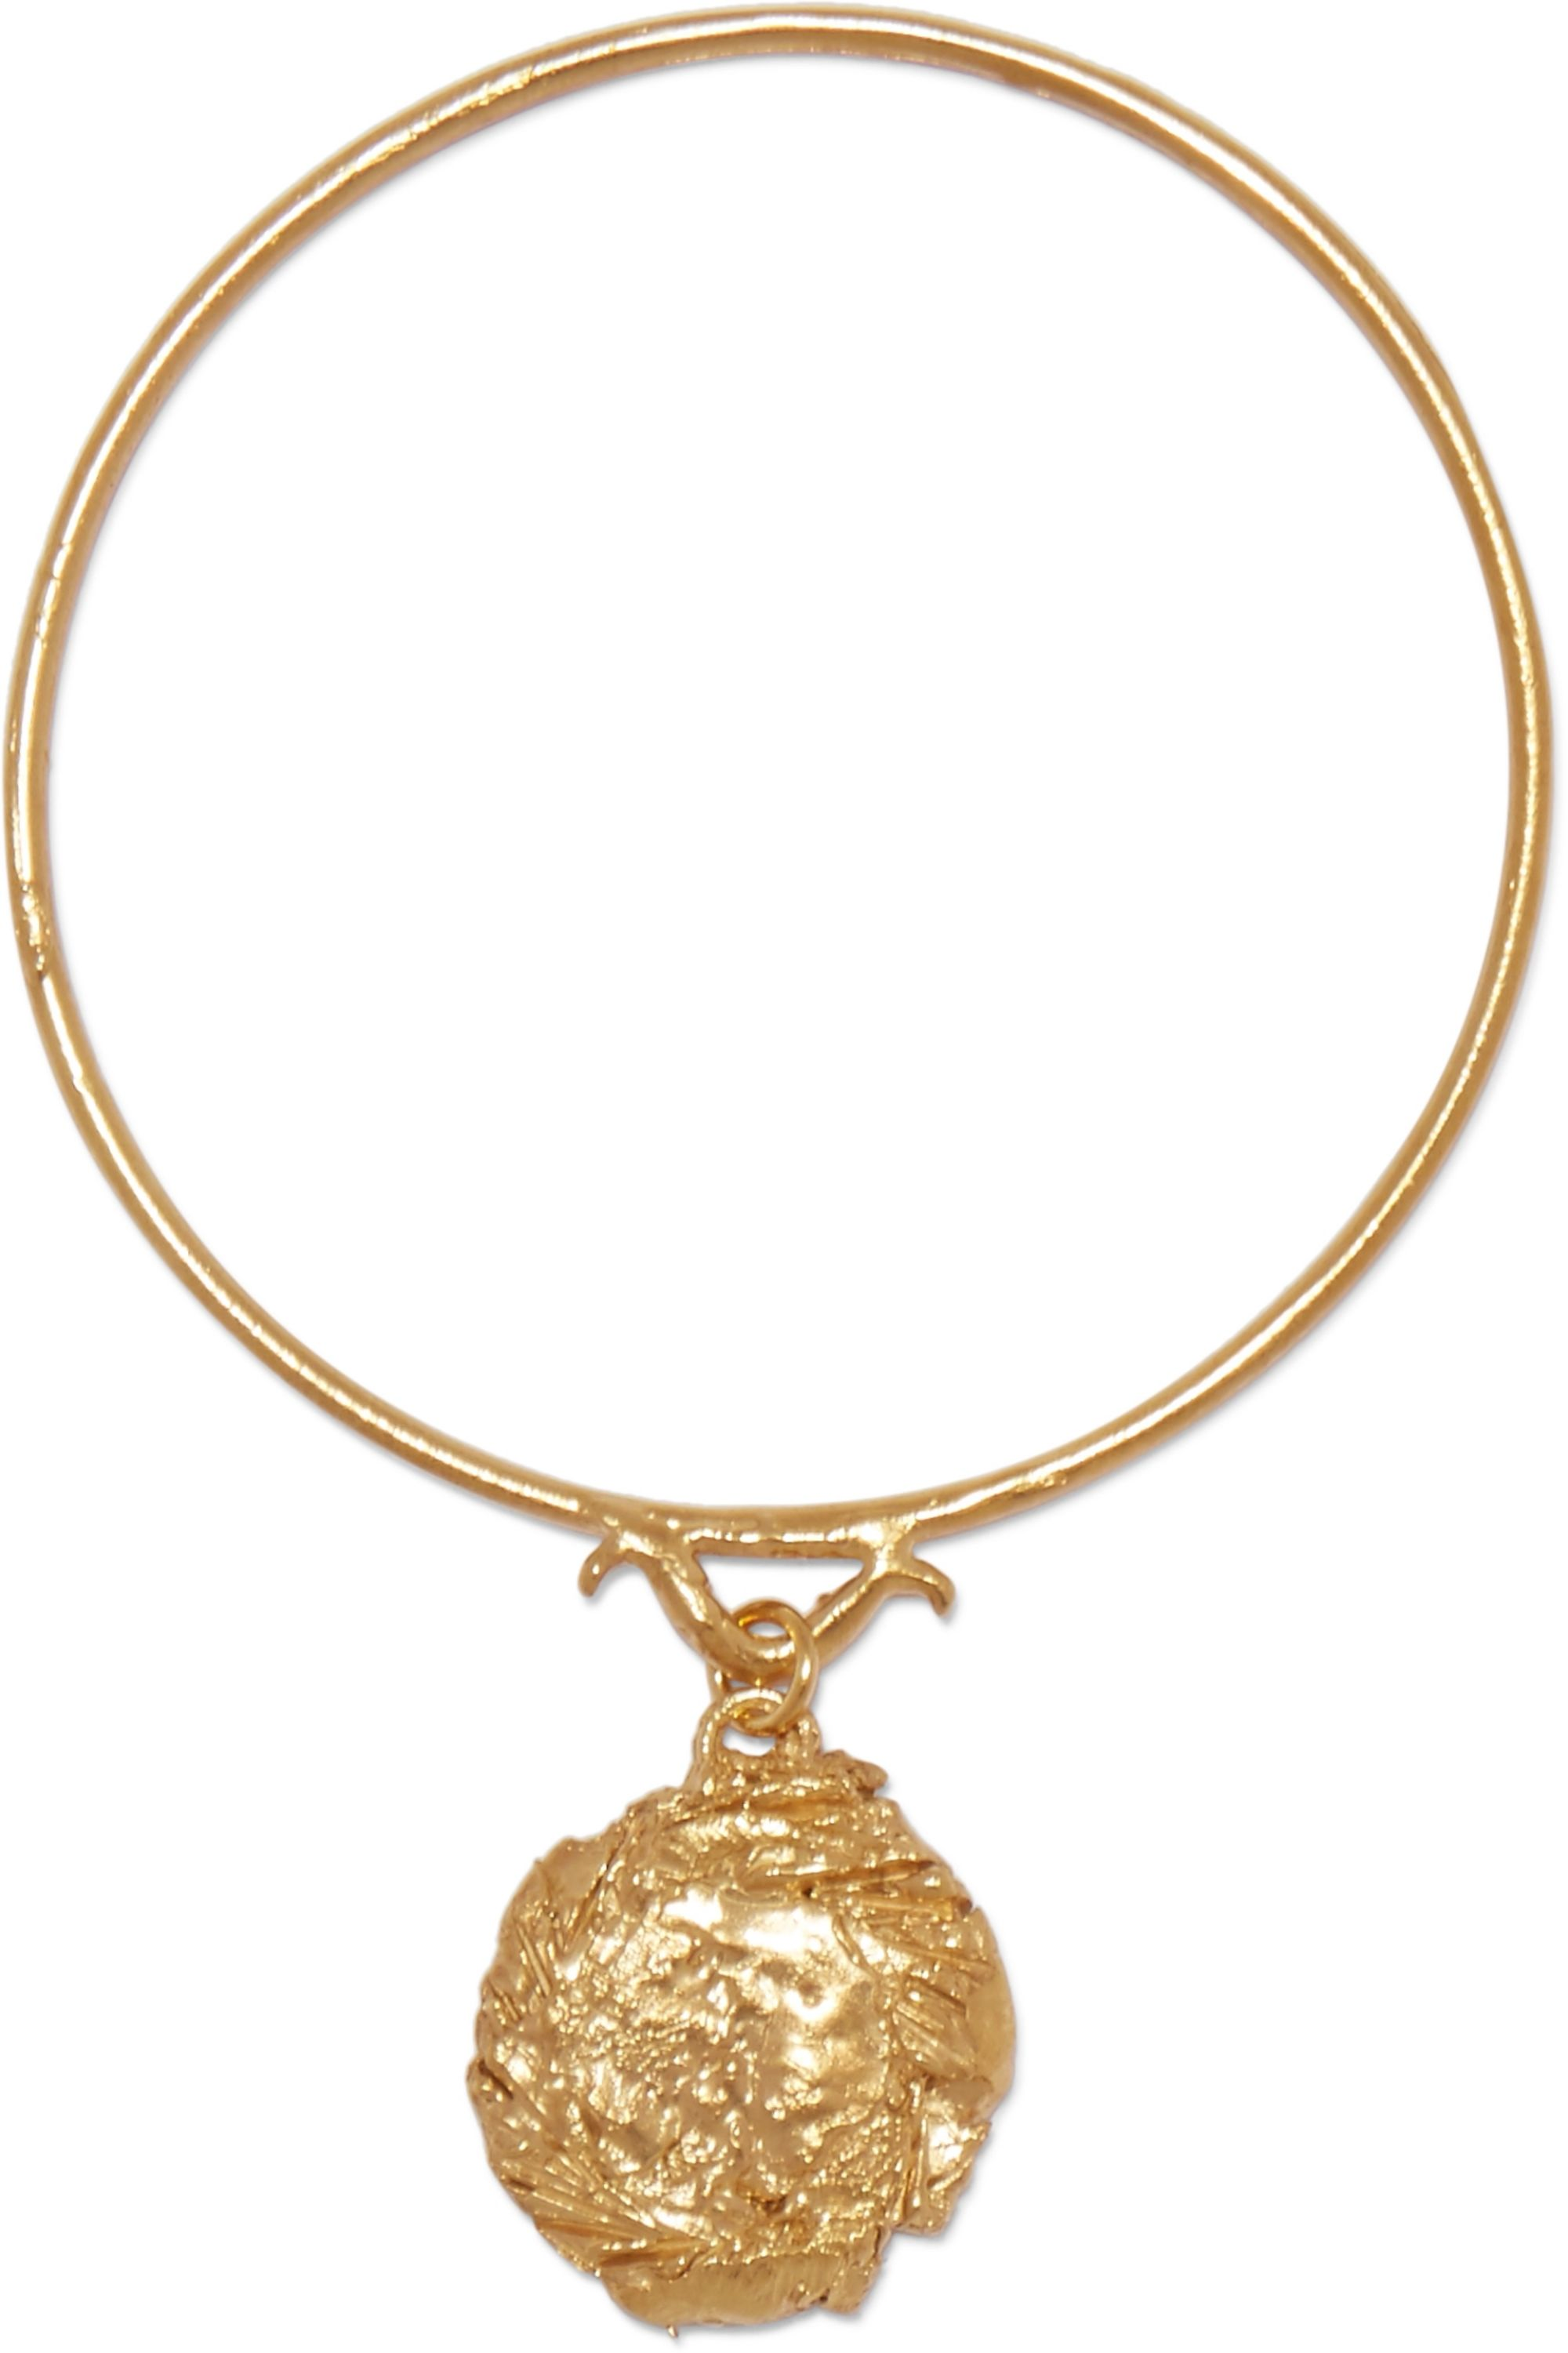 Alighieri The Fortune Charm gold-plated bracelet